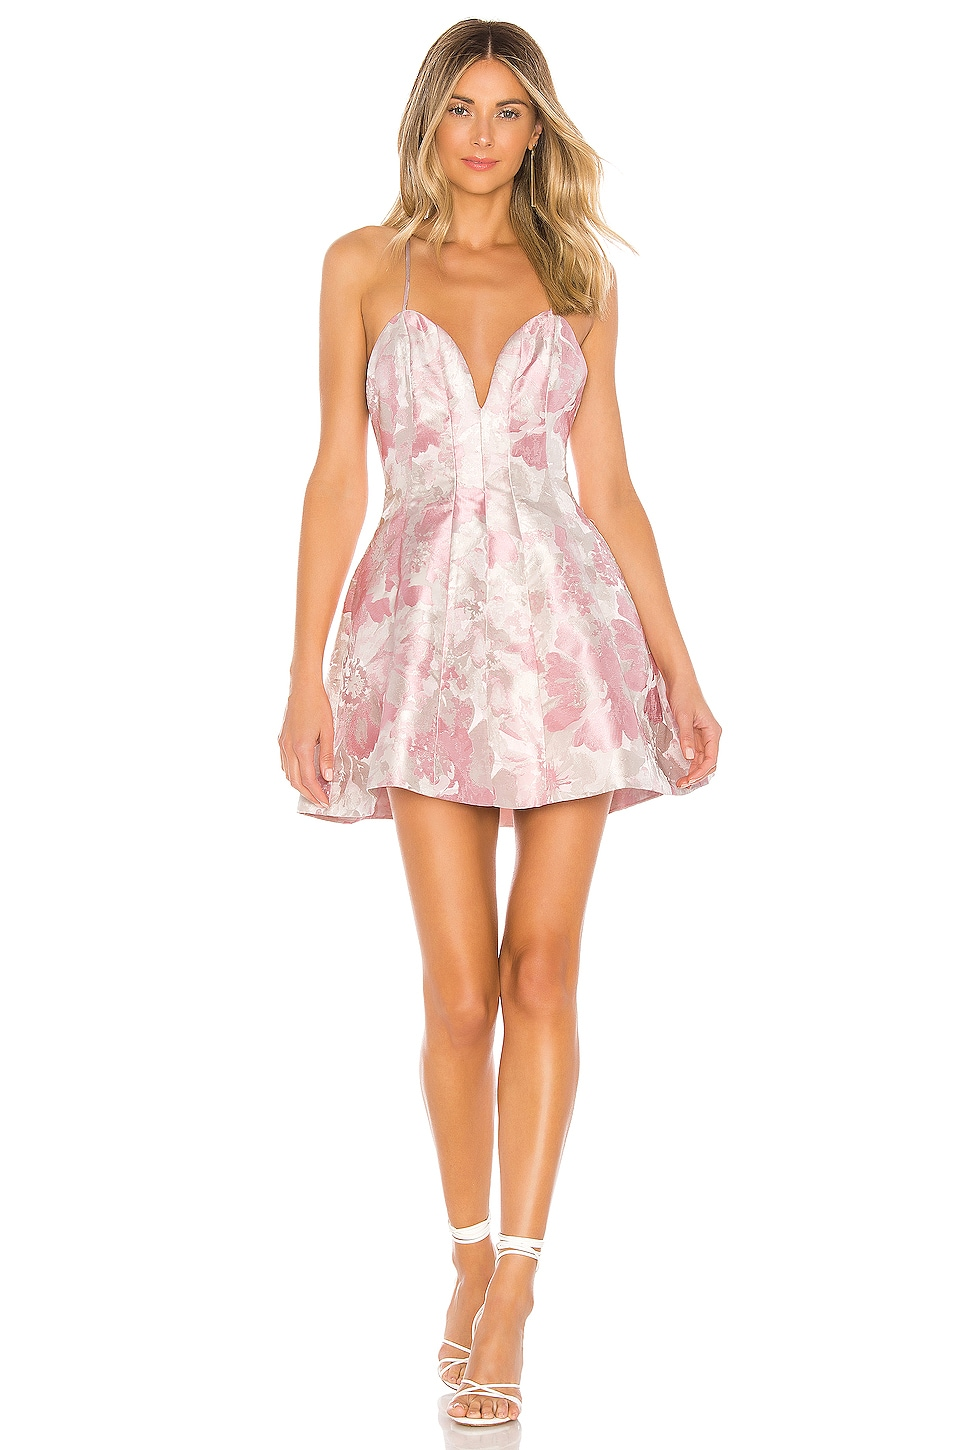 Lovers + Friends Aragus Mini Dress in Pink Tonal